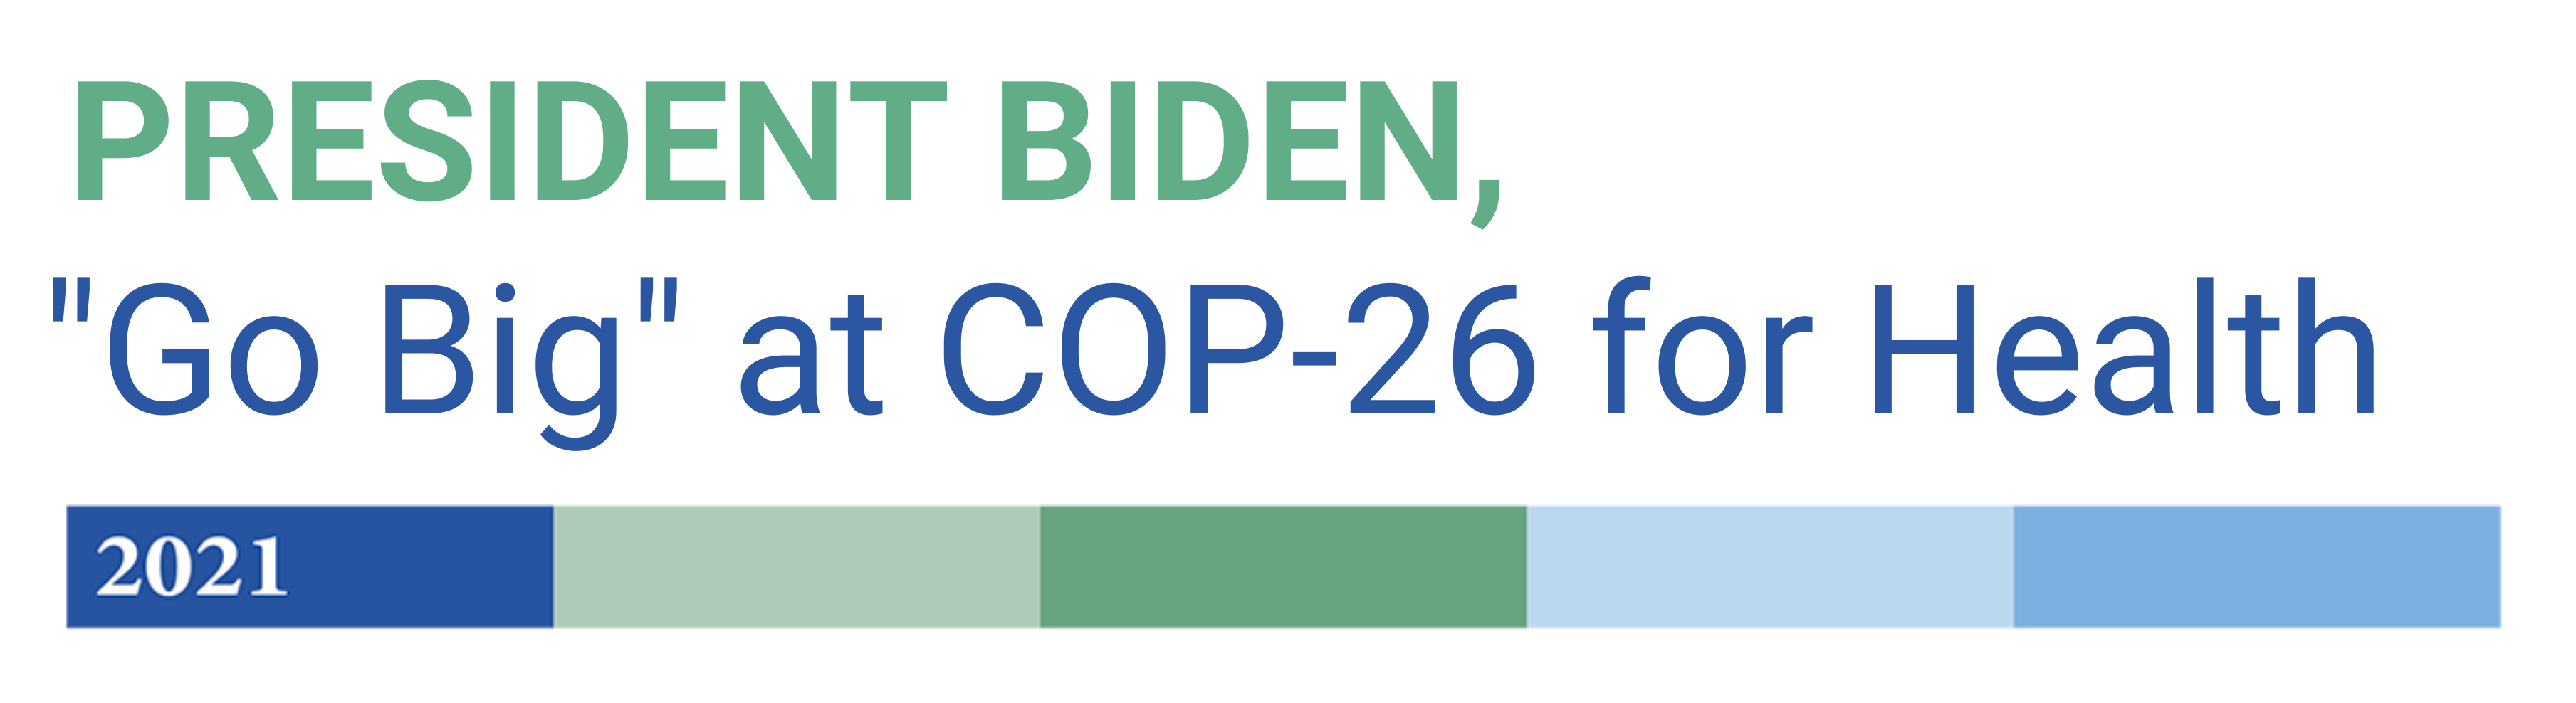 "President Biden, ""Go Big"" at COP26 for Health"